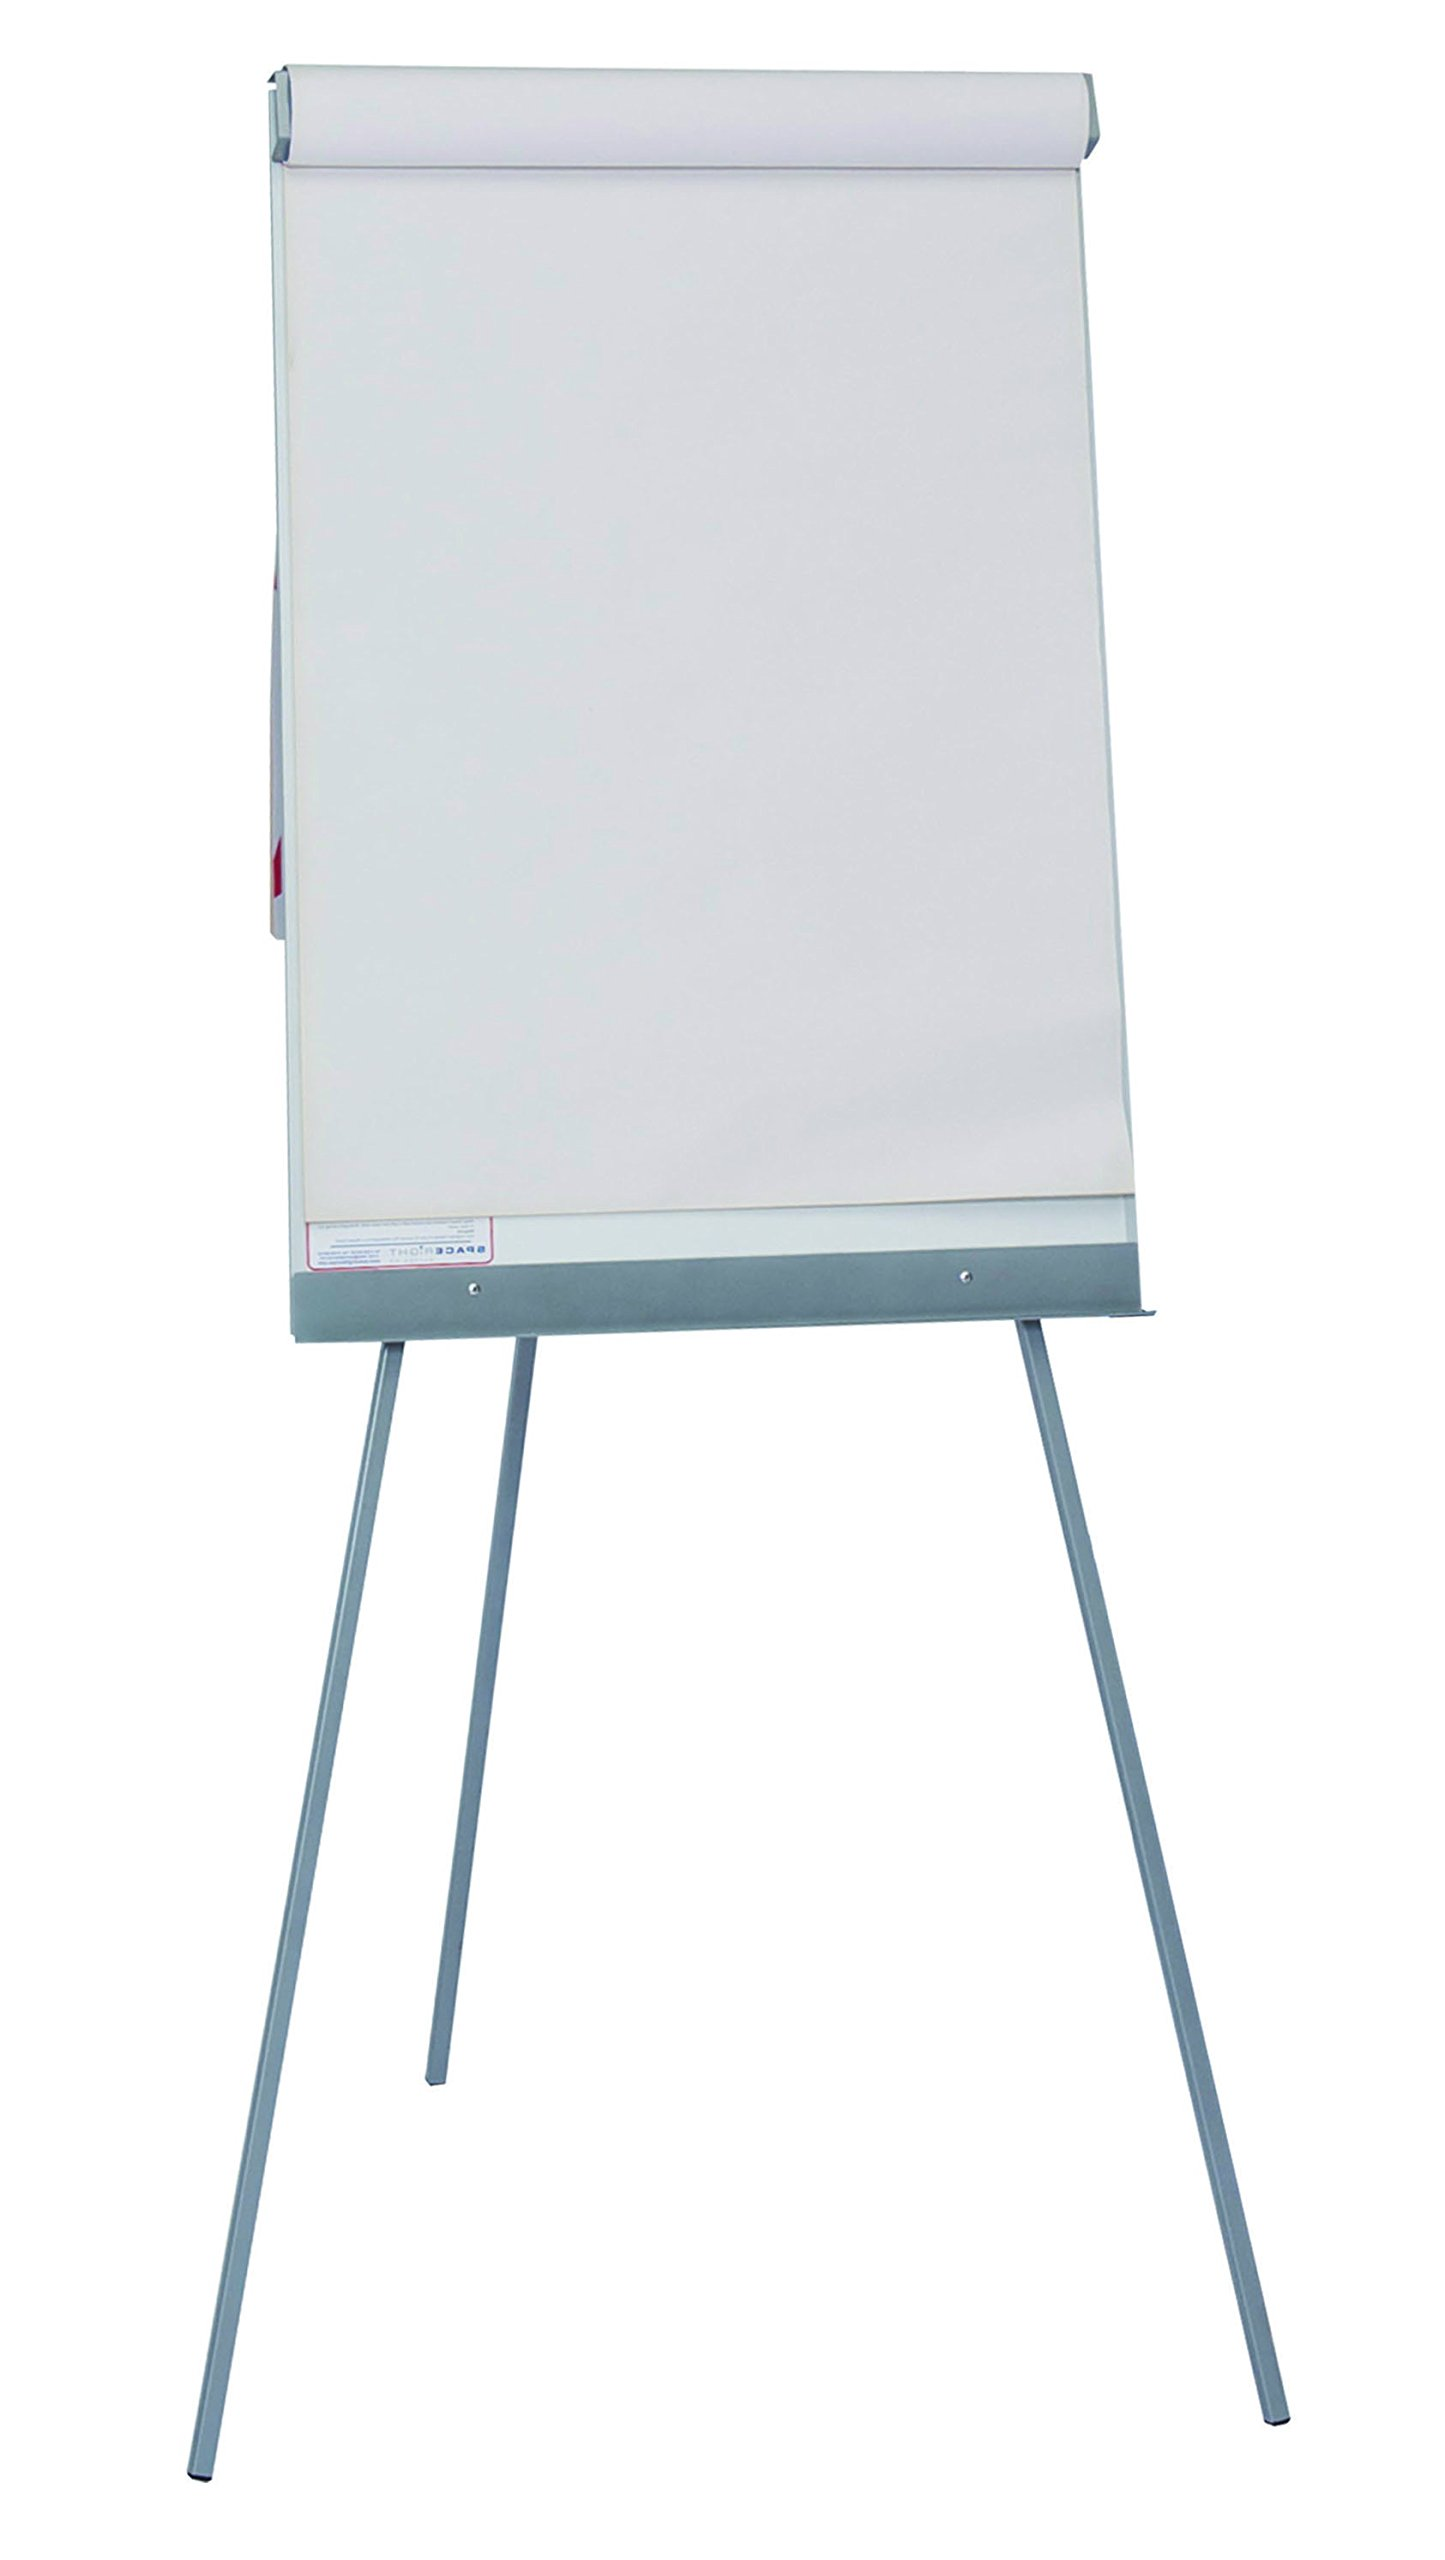 Spaceright Europe Non-Magnetic Telescopic Flipchart Easel Writing Board